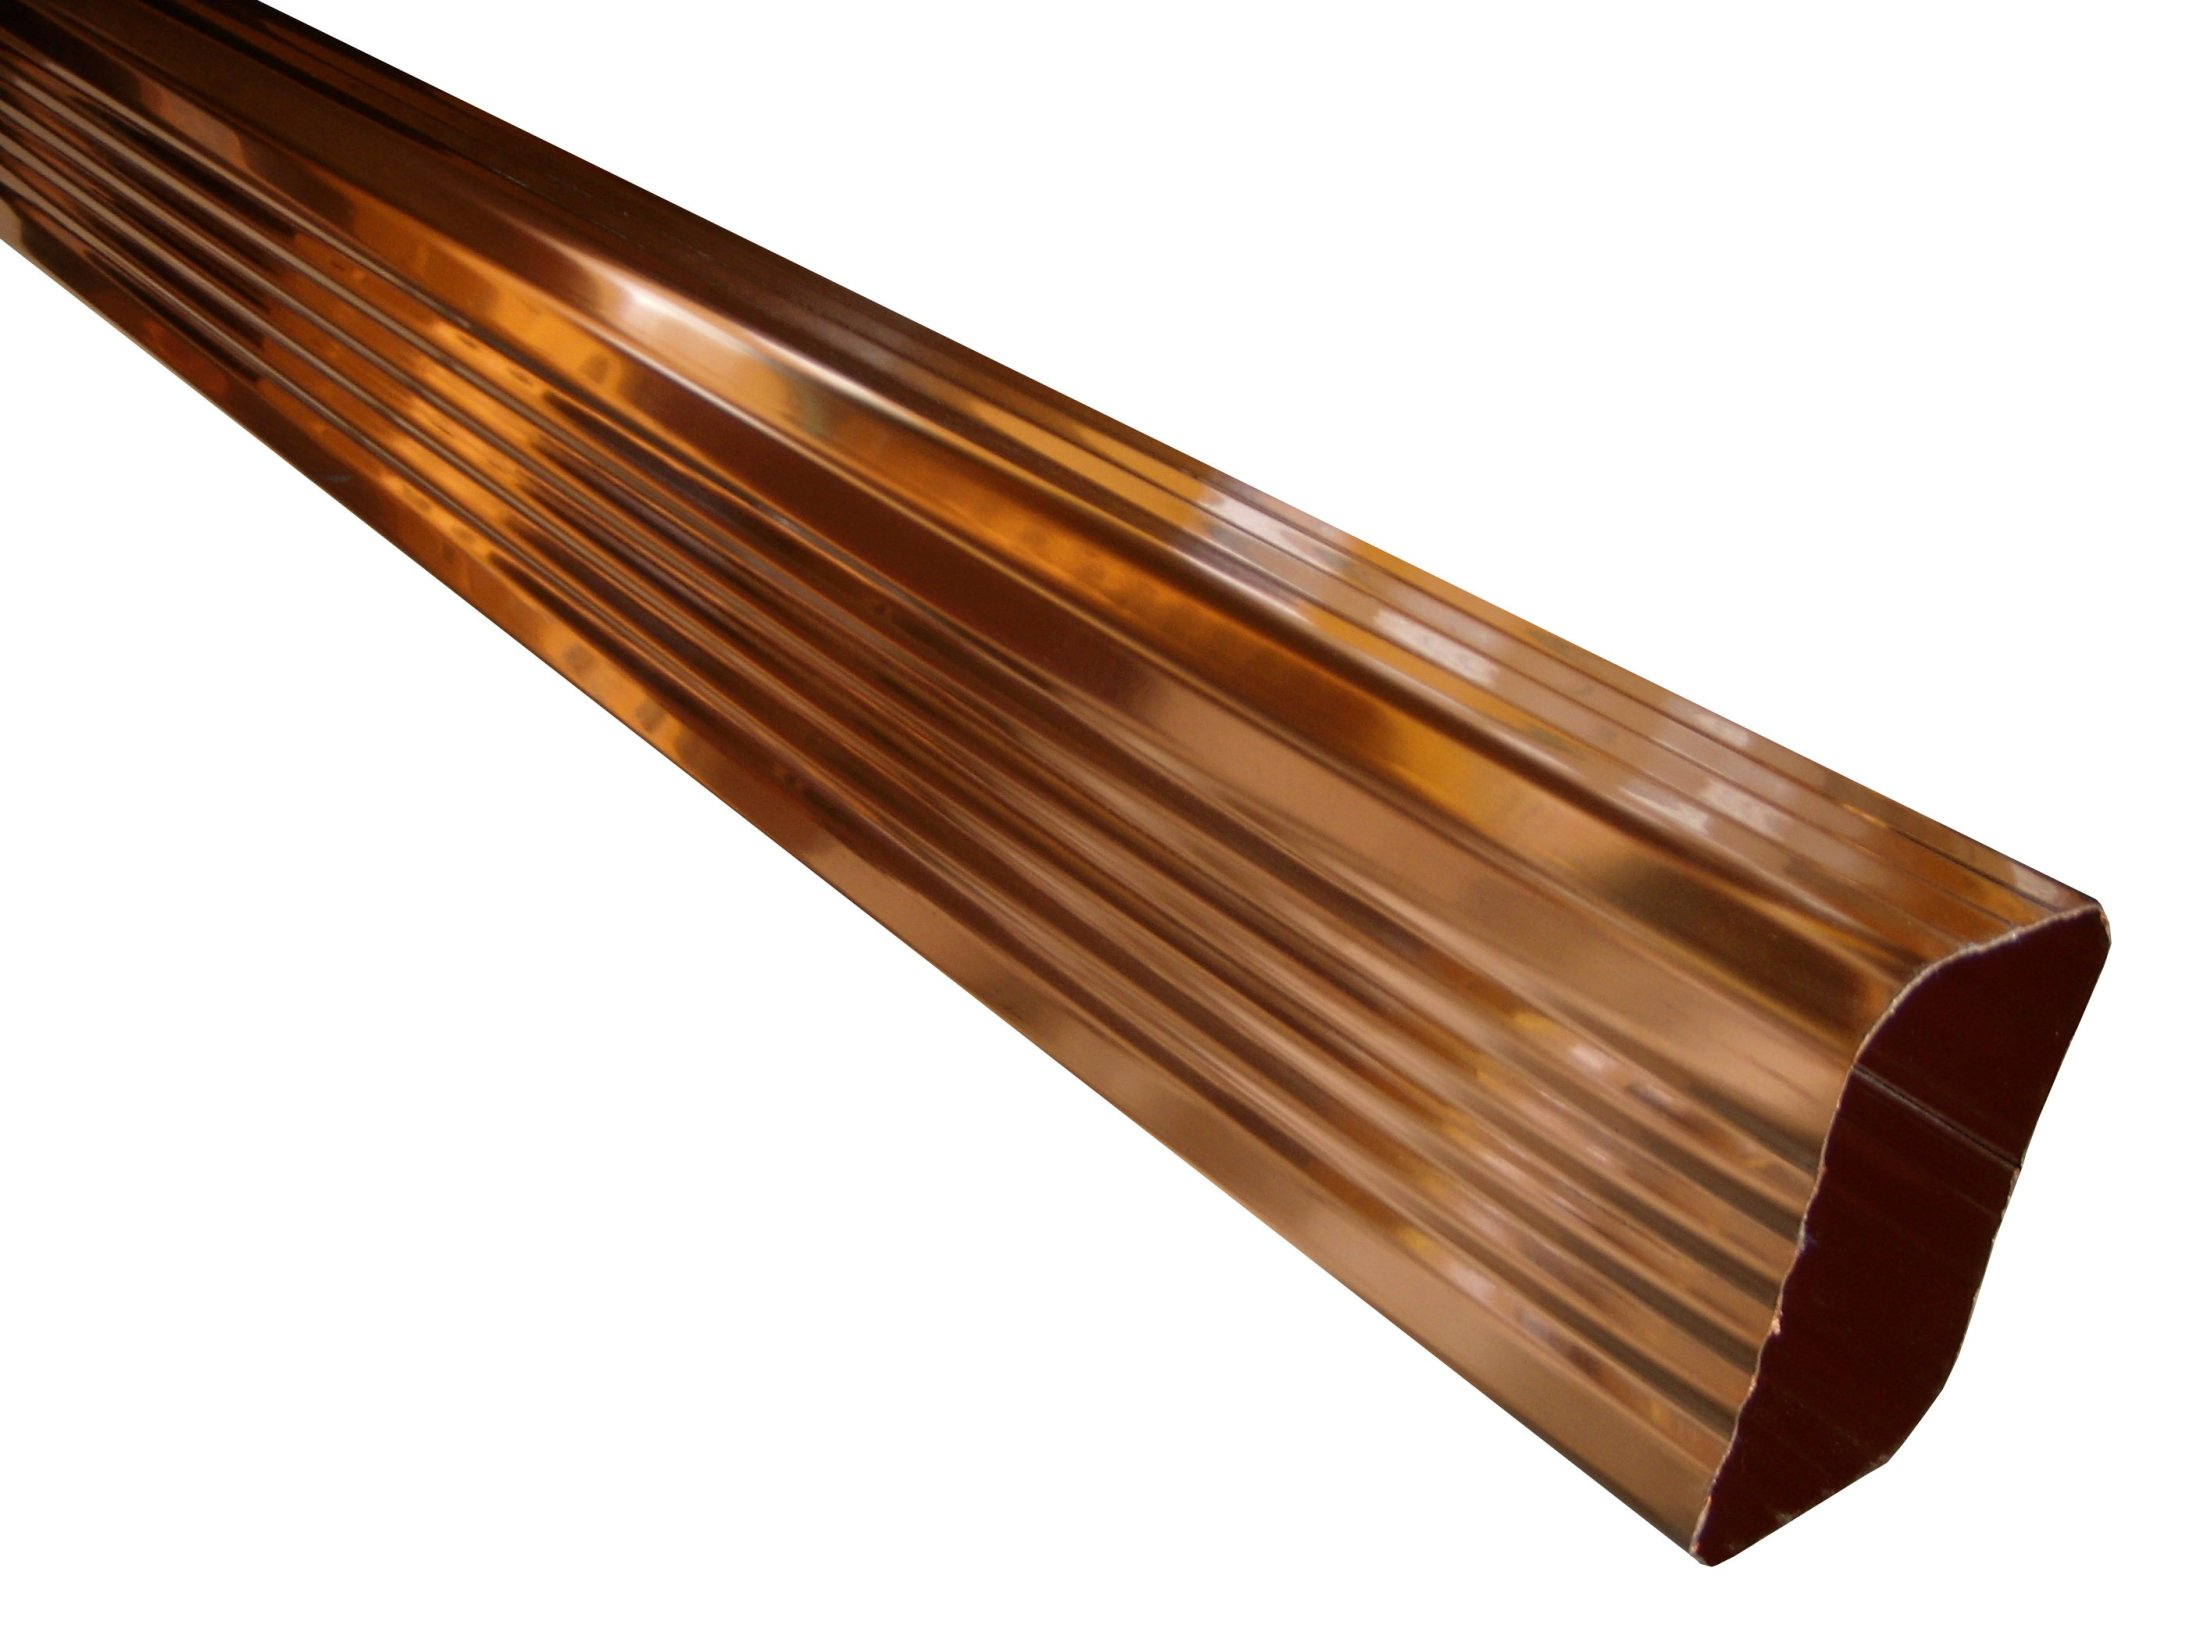 Rectangular Copper Downspouts